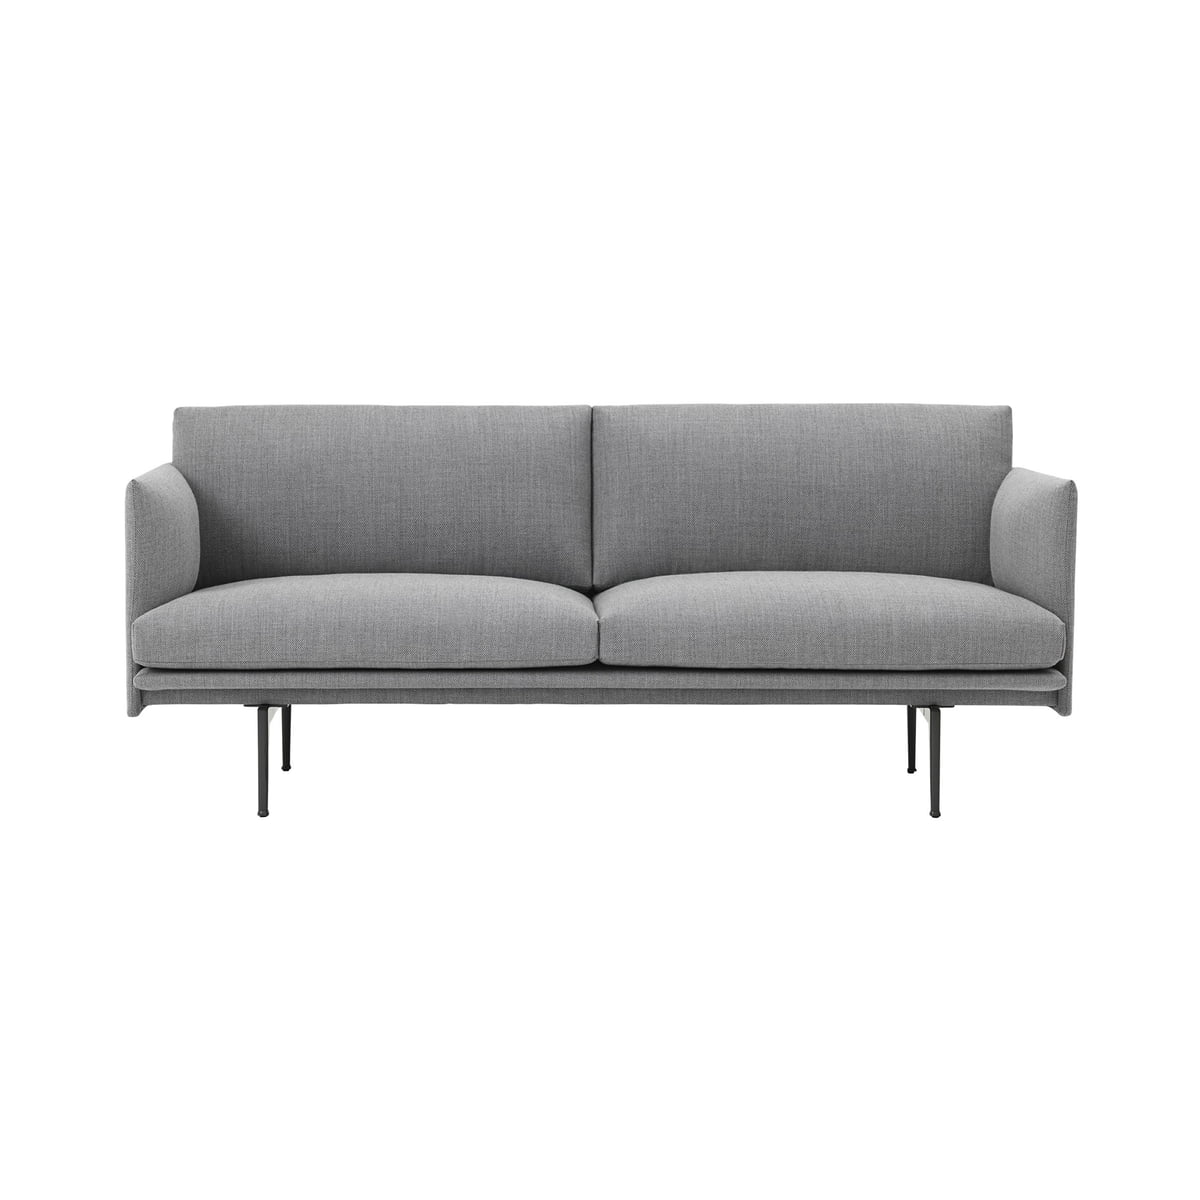 Outline sofa 2 seater by muuto in the shop for Sofa 2 sitzer